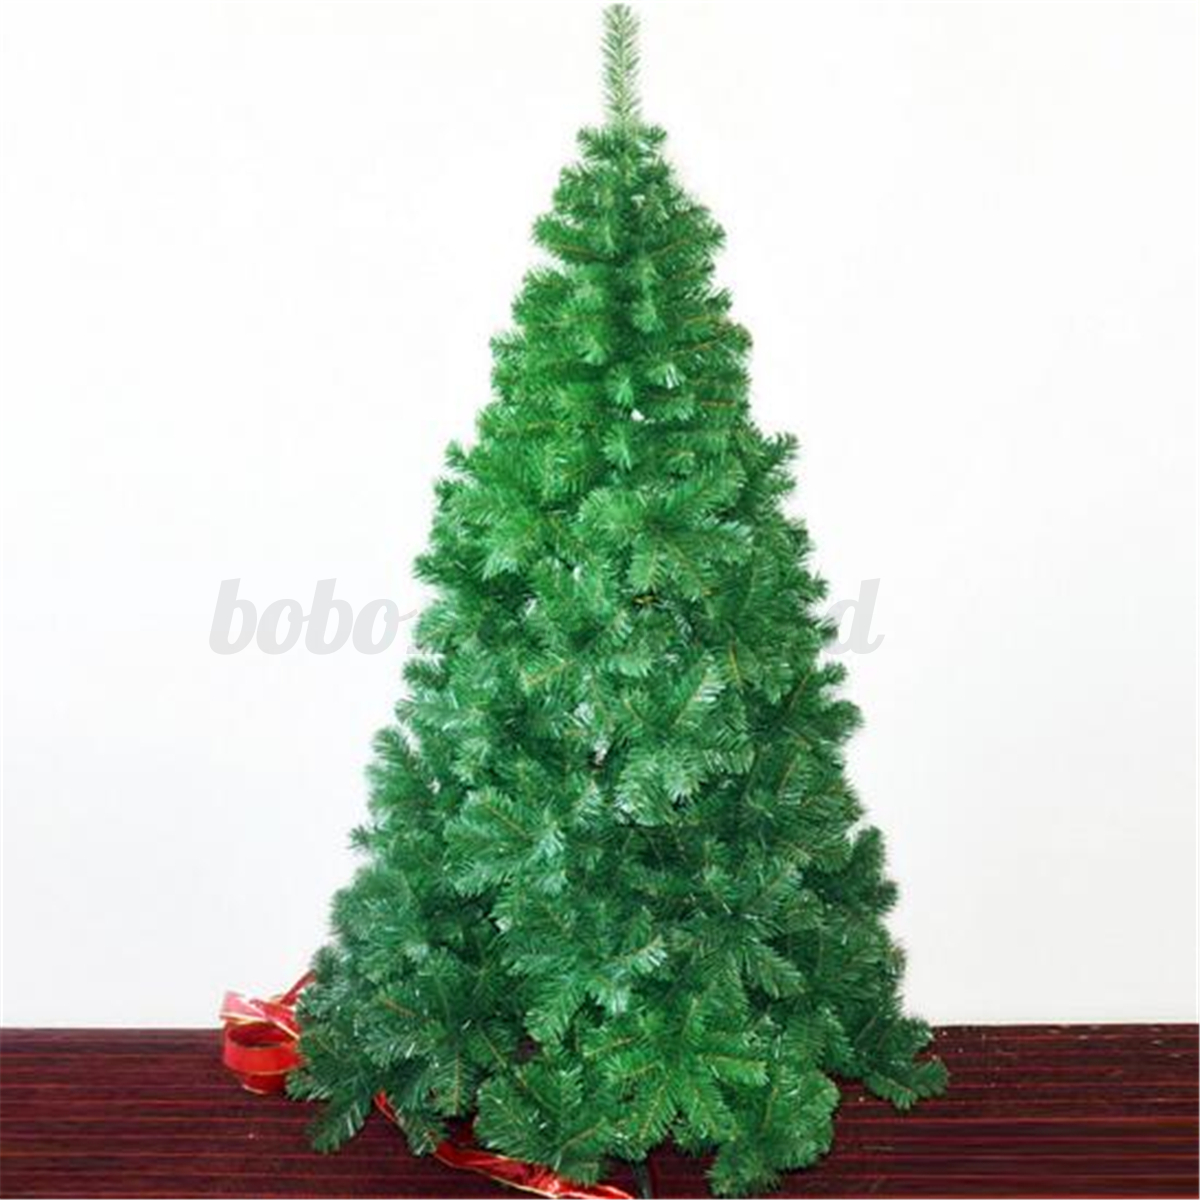 large artificial christmas tree indoor outdoor decor traditional ornament ebay. Black Bedroom Furniture Sets. Home Design Ideas